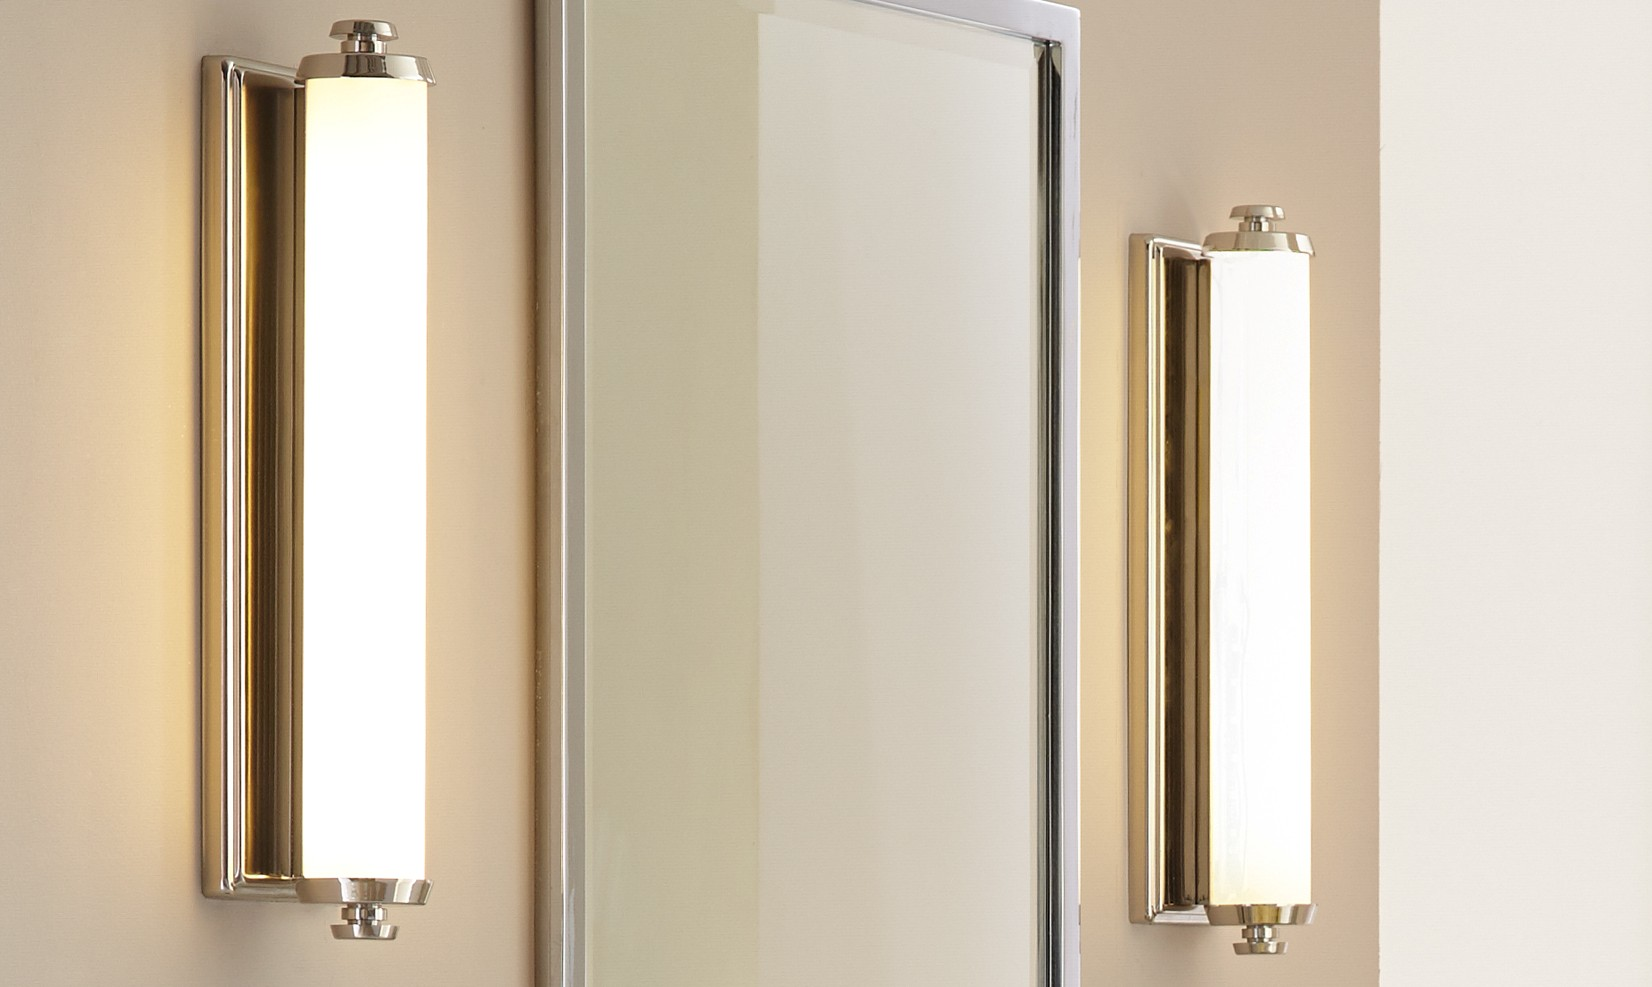 Vanity Lights For Bathroom Vanity Lights